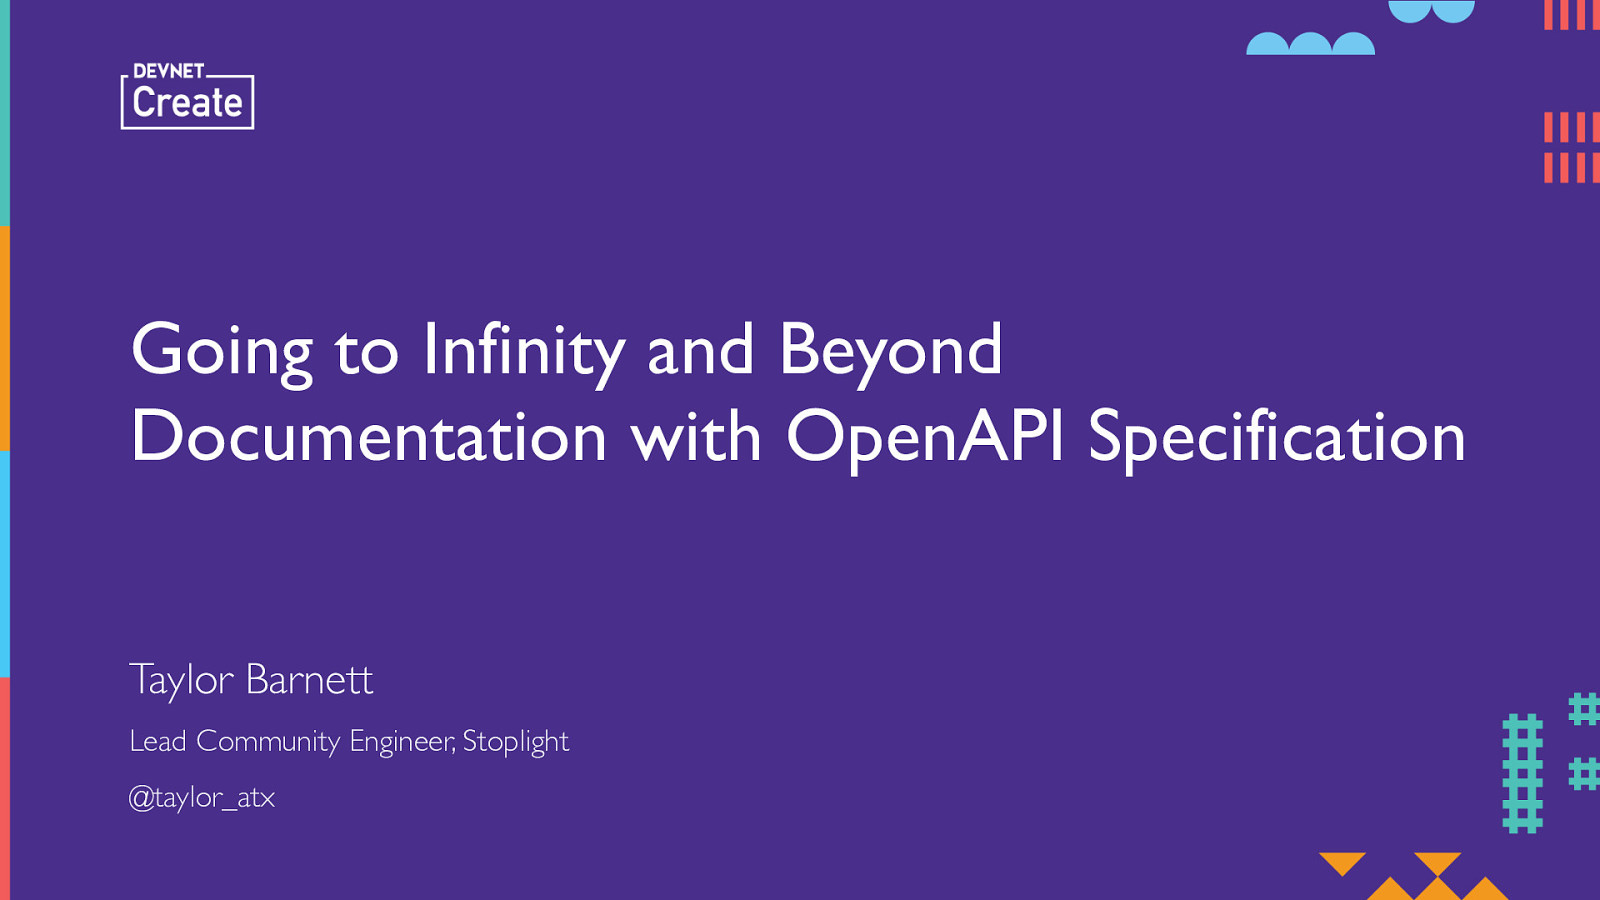 Going to Infinity and Beyond Documentation with OpenAPI (DevNet Create Edition)